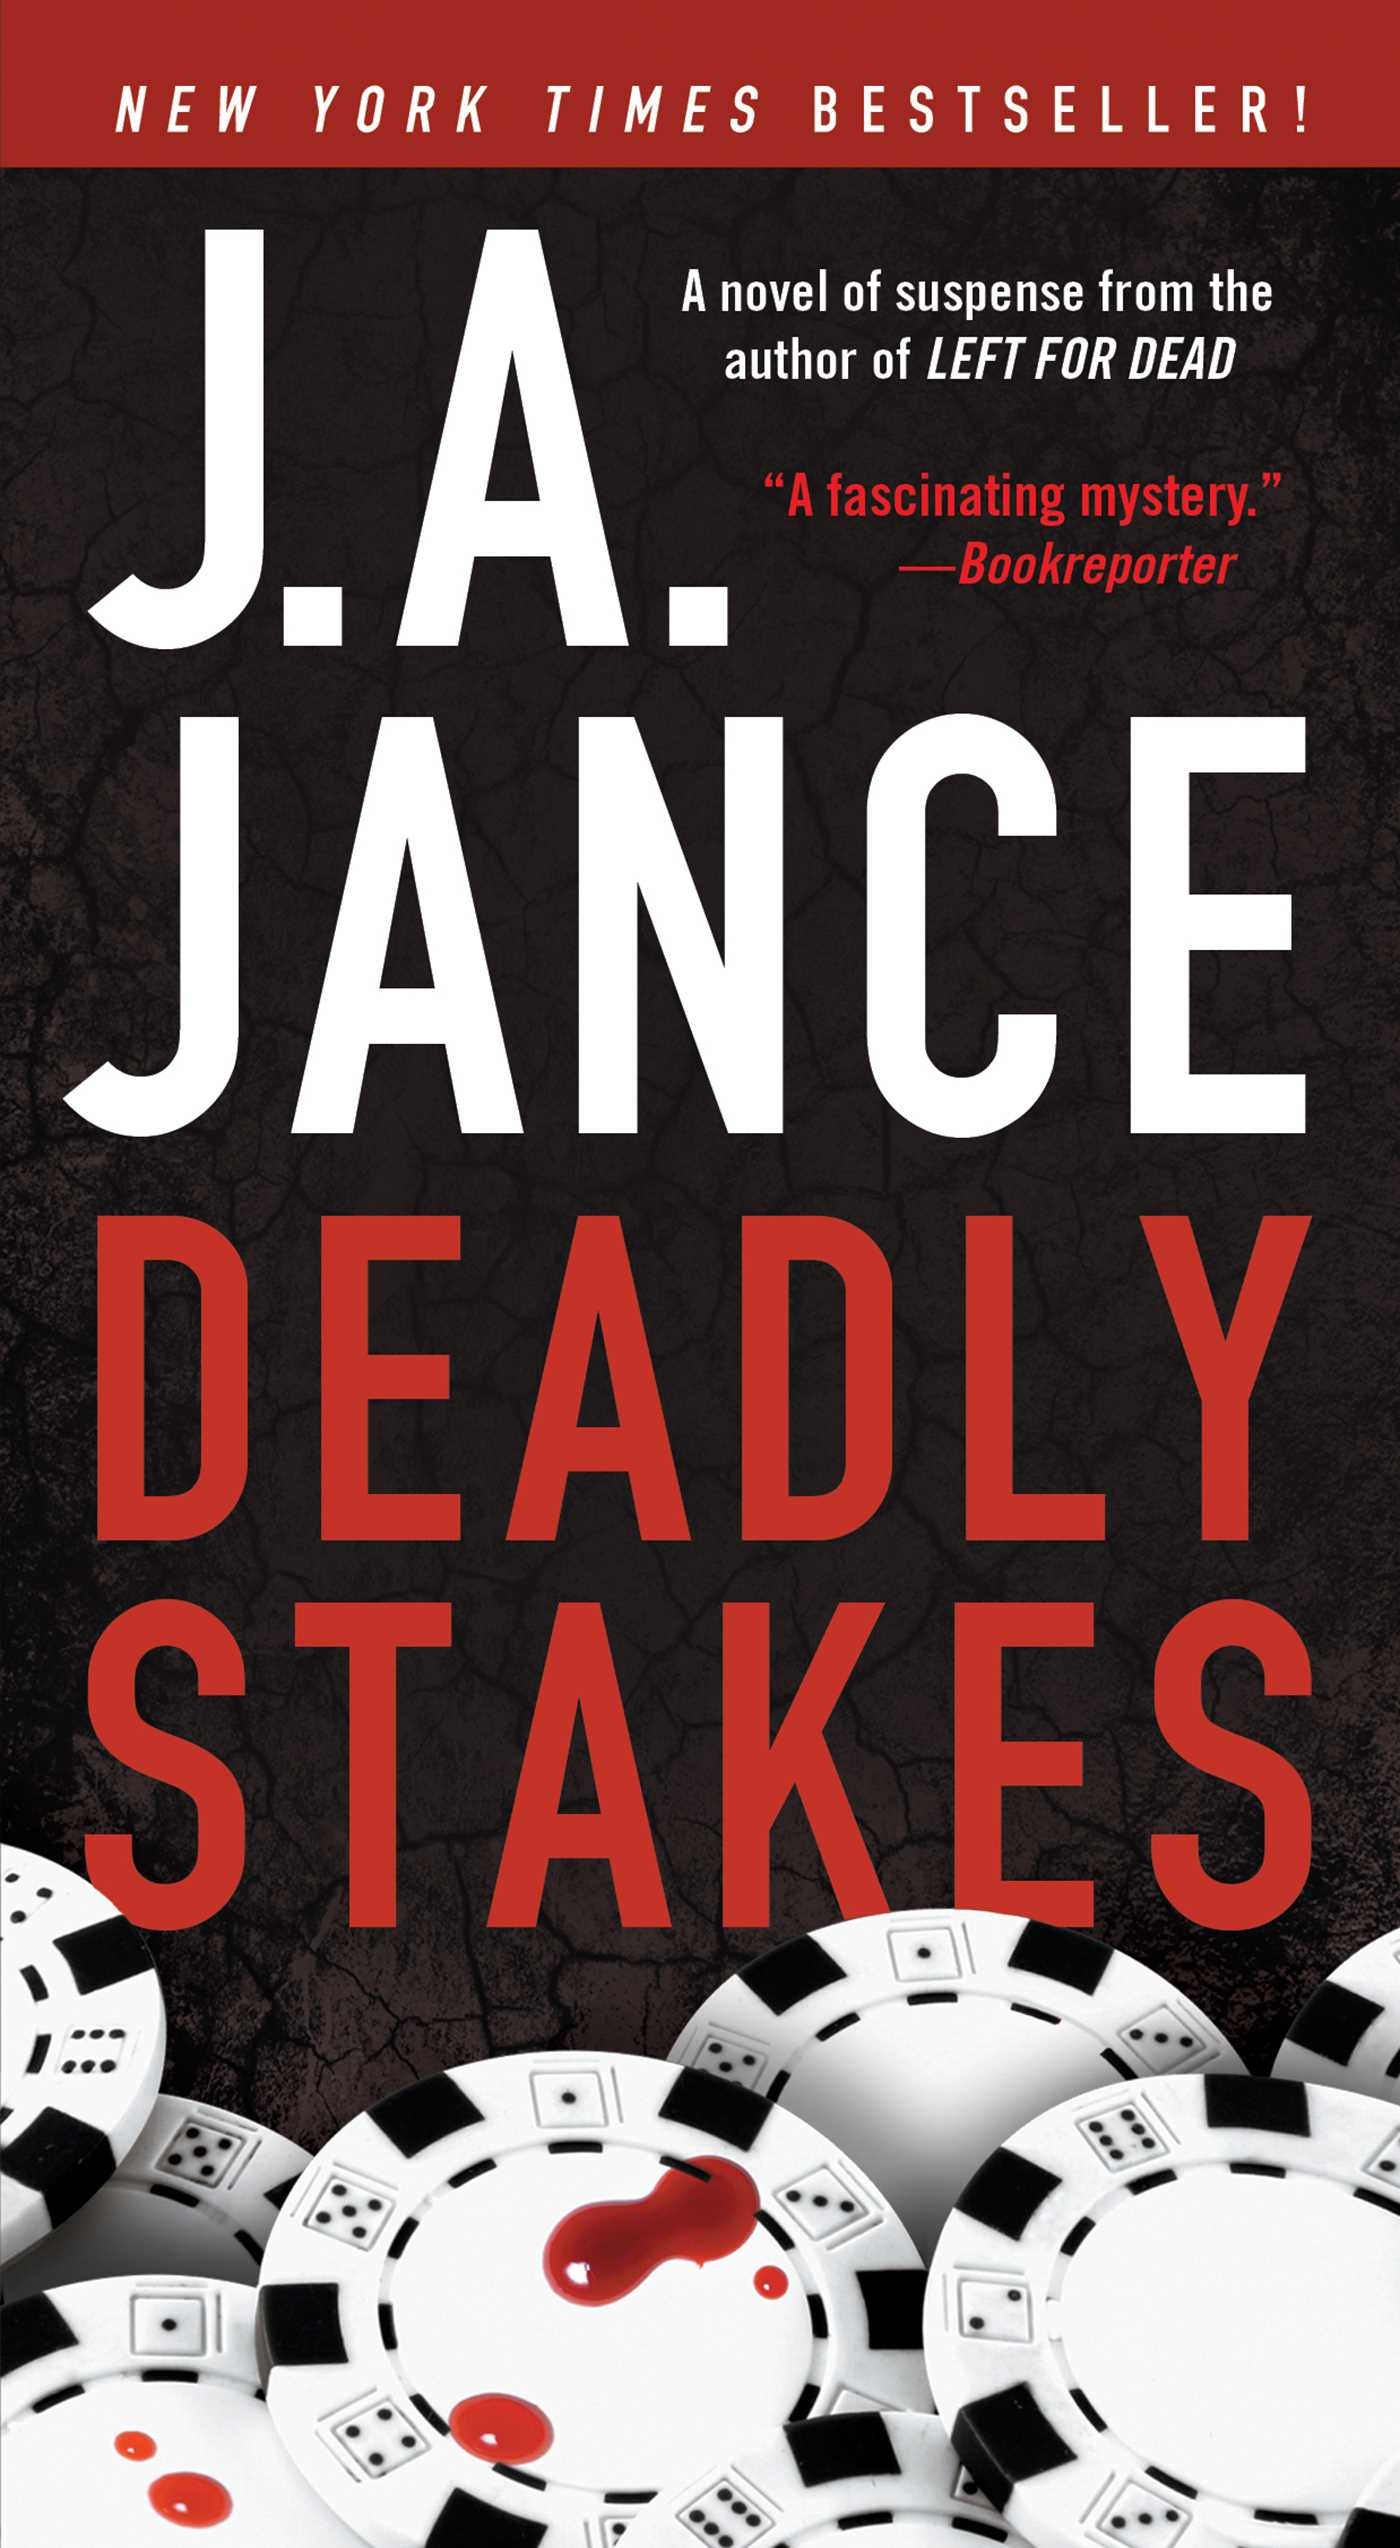 Deadly-stakes-9781451628708_hr